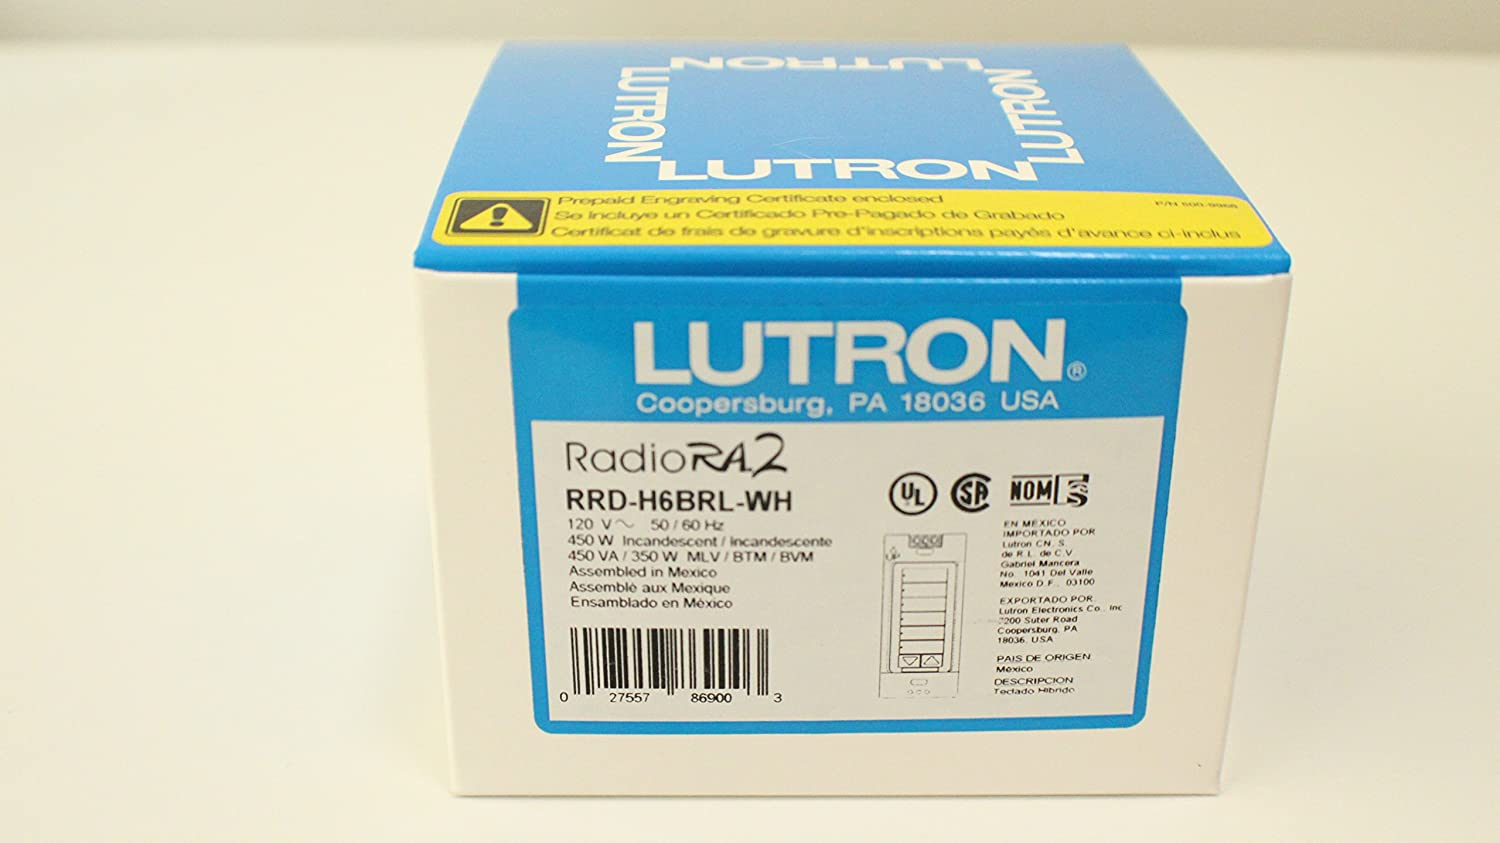 Amazon.com : Lutron RRD-H6BRL-WH Radiora2 Neutral Wire Dimmer Hybrid ...